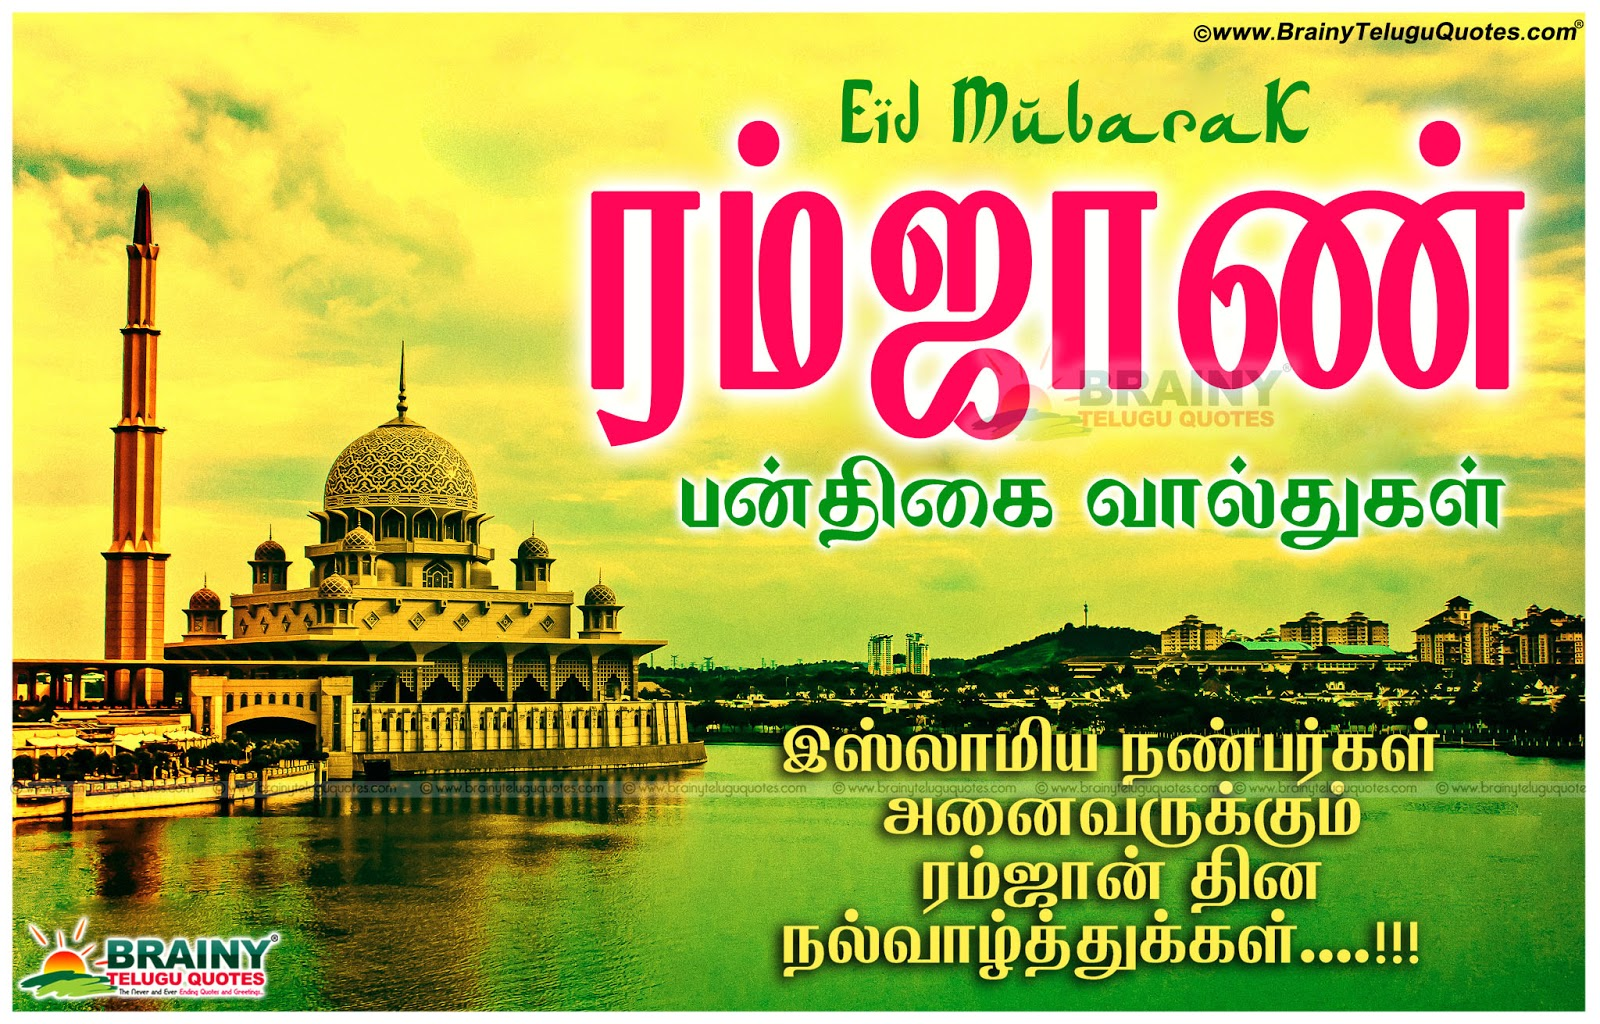 Holy Qua Ran Ramalan Tamil Best Wishes And Greetings For Eid